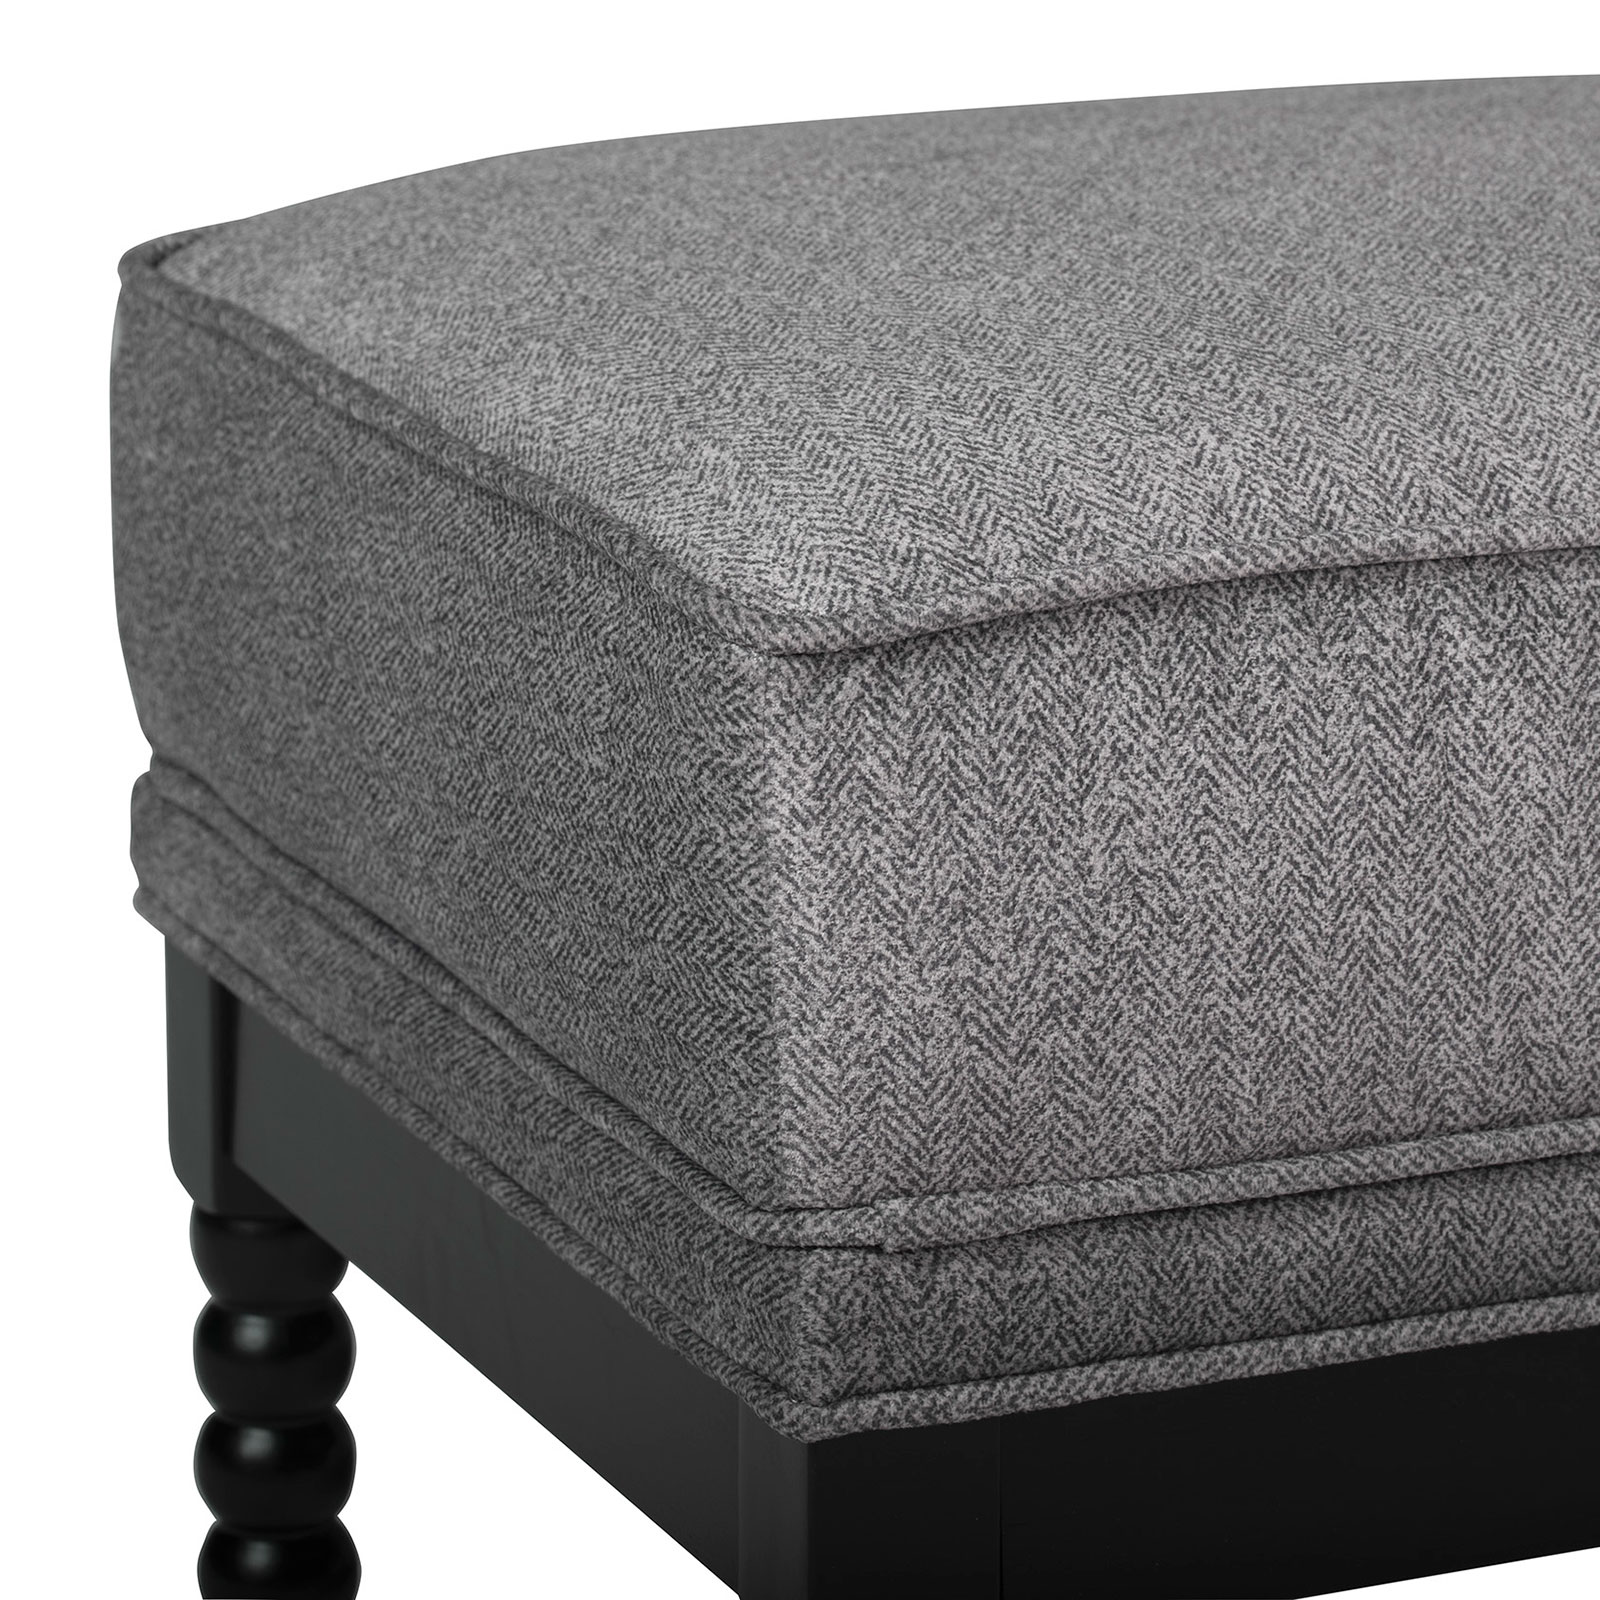 72042-Colonnade-Spindle-Ottoman-detail1